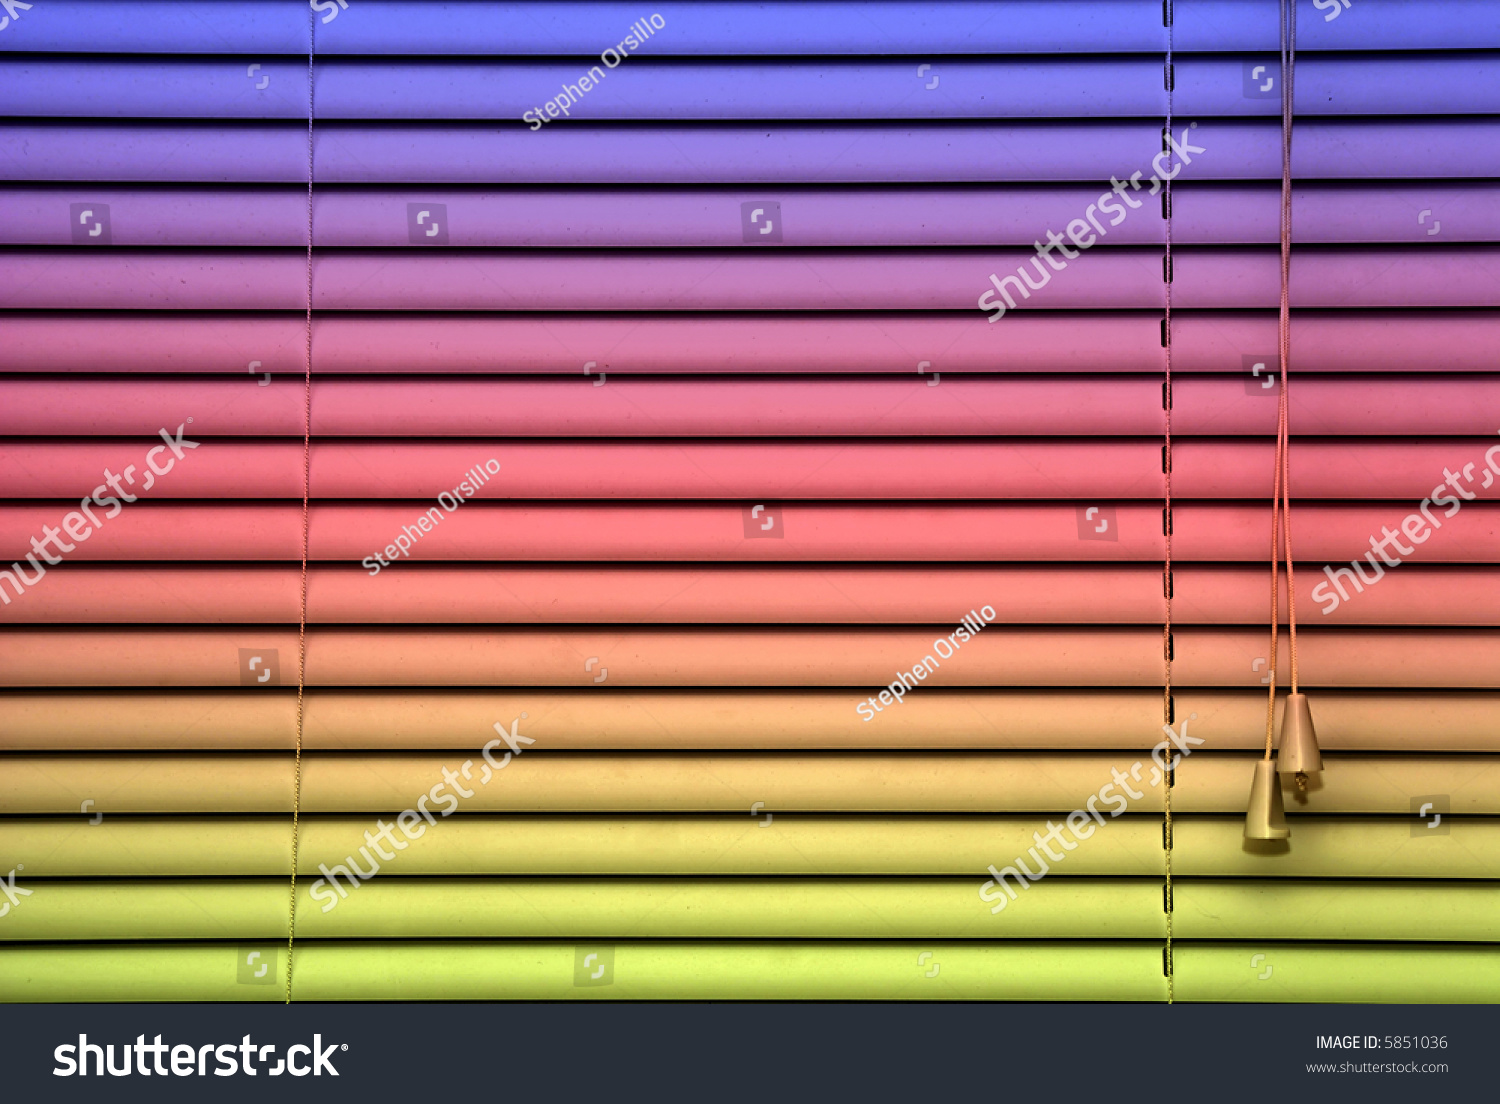 Closed Rainbow Colored Blinds Showing Adjusting Cords And Slats Designed For A Background